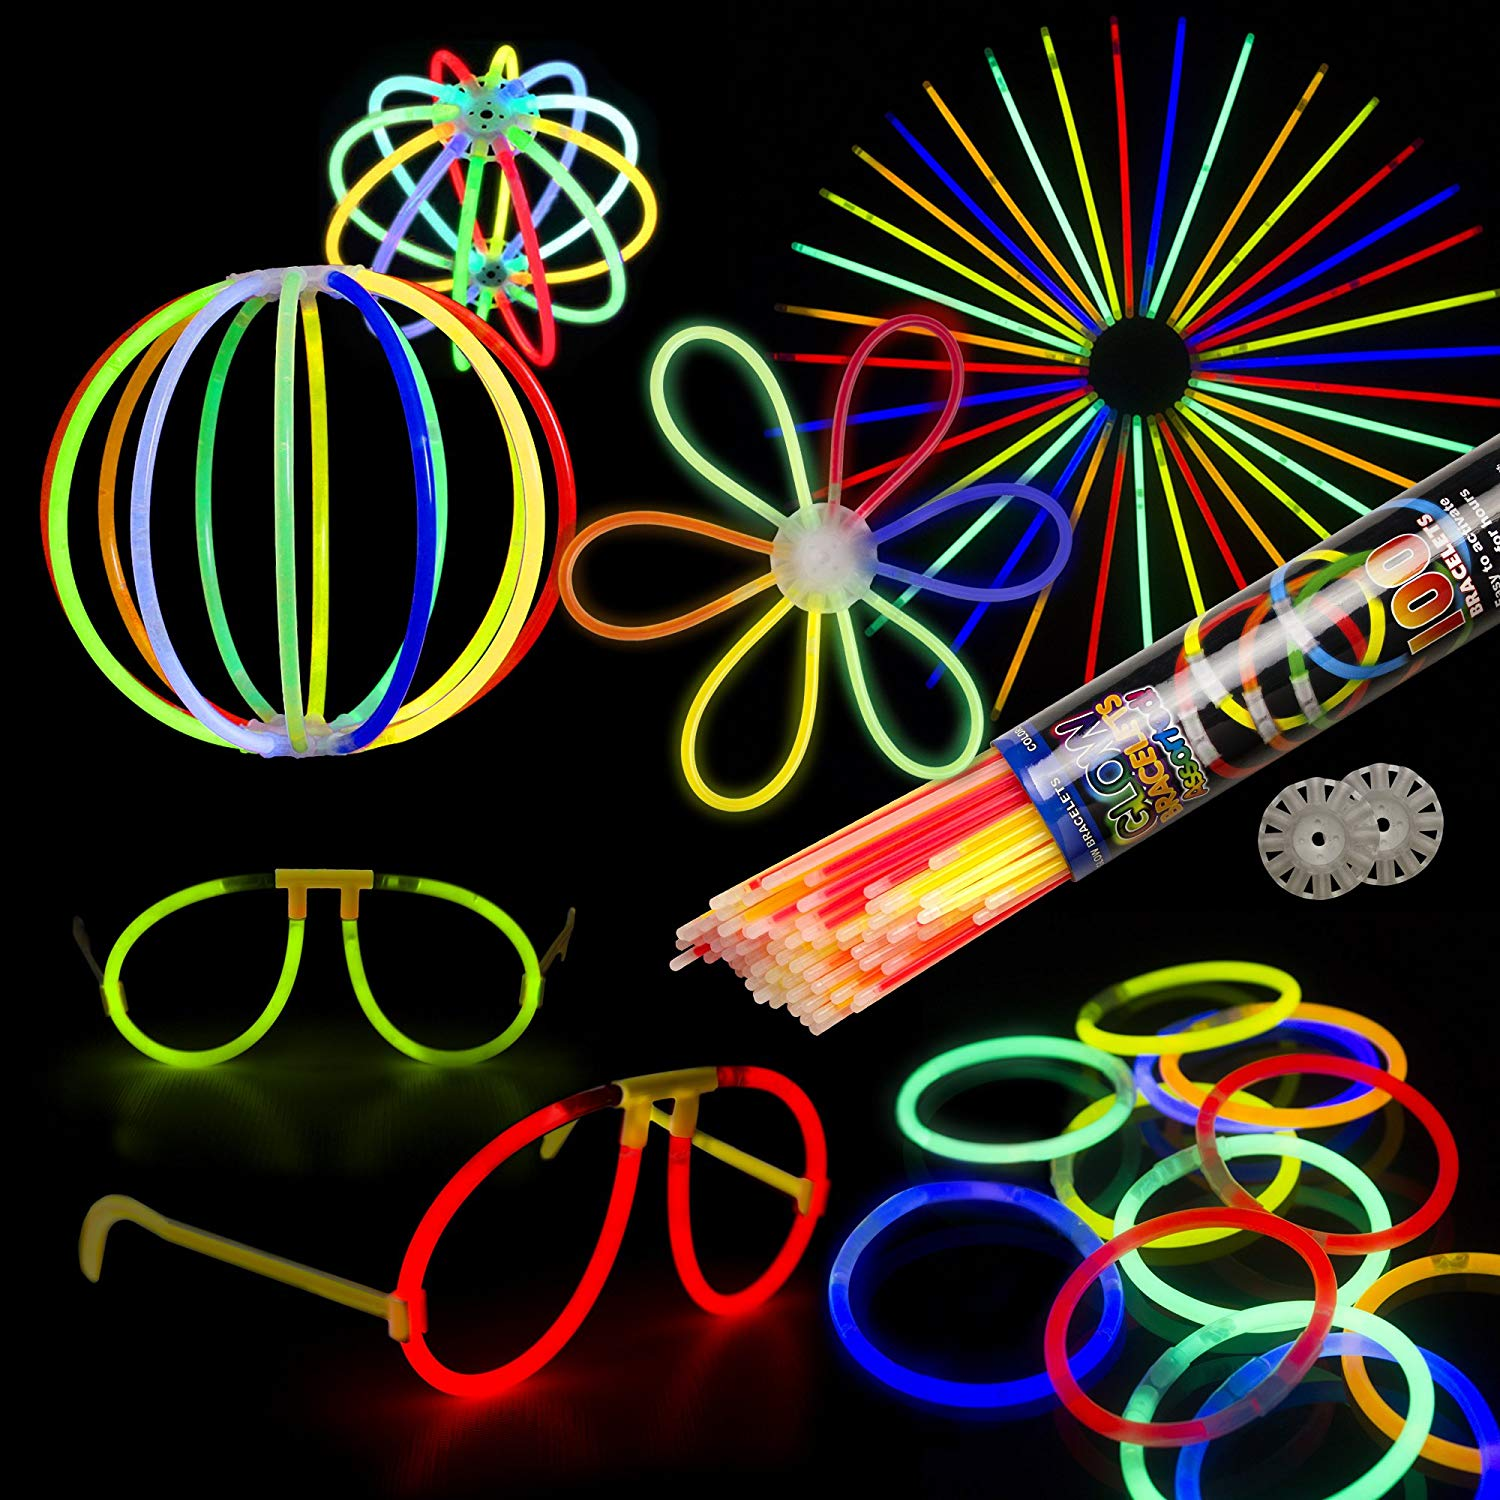 Fun Central BC679 Glow Sticks Large Party Pack for 20 People - Includes: 200 Pcs Assorted Color 8 inch Premium Glow Sticks with Connectors, Glow in The Dark Sticks, Glow Sticks Bulk - Assorted